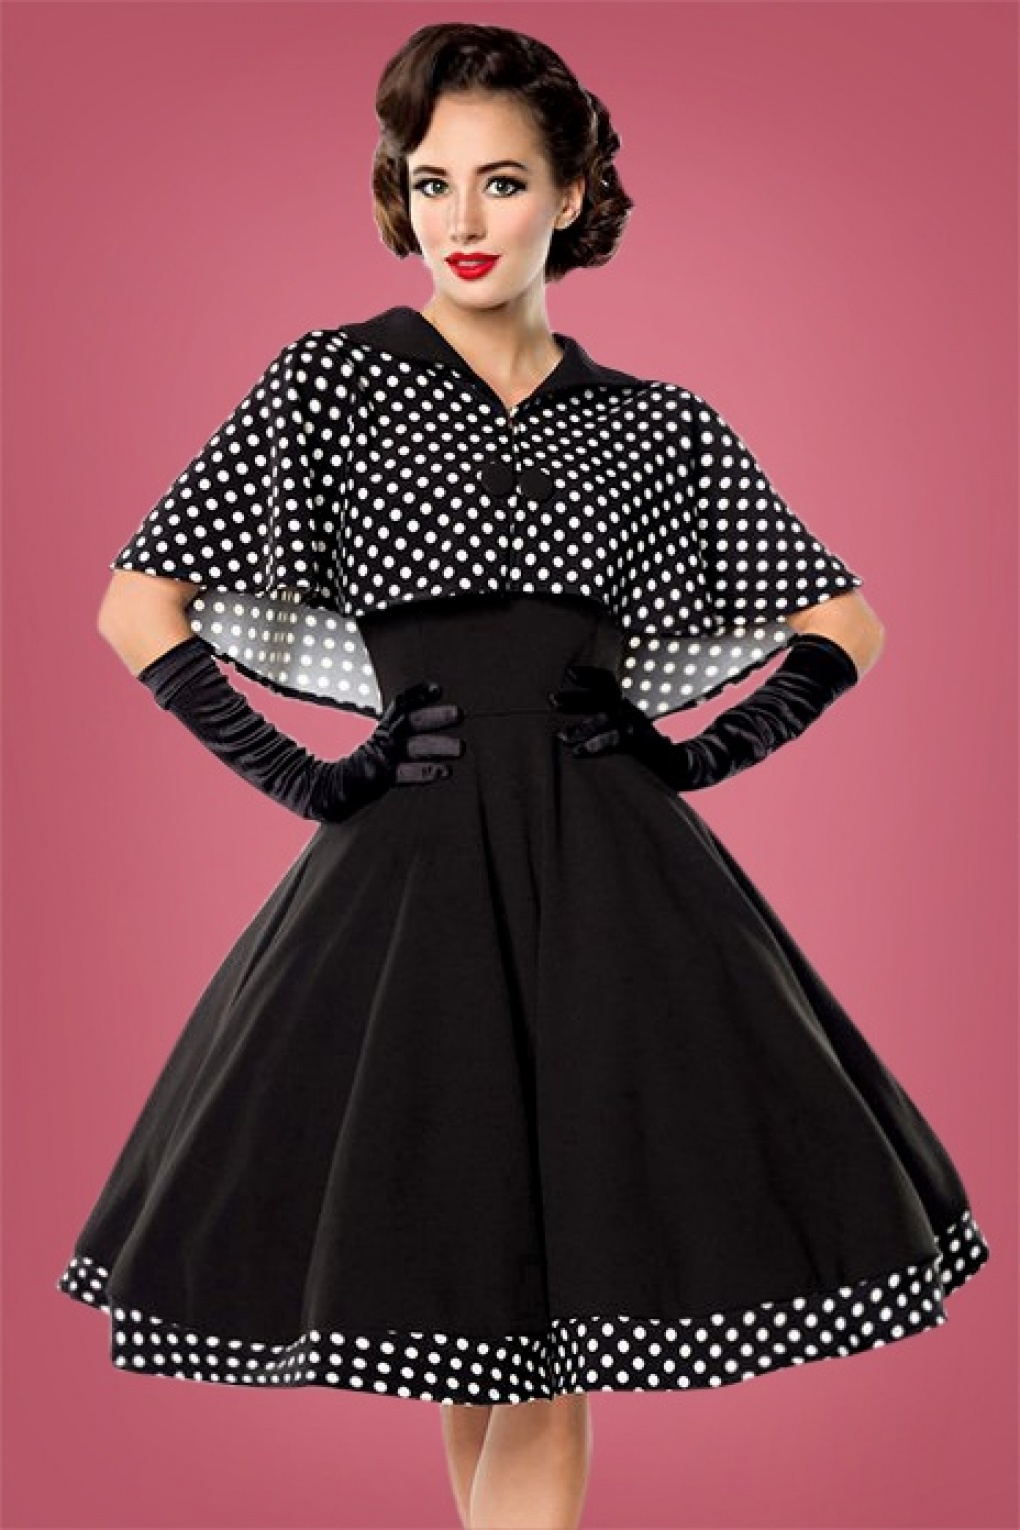 Vintage Polka Dot Dresses – Ditsy 50s Prints 50s Lesly Polkadot Cape Swing Dress in Black £55.95 AT vintagedancer.com